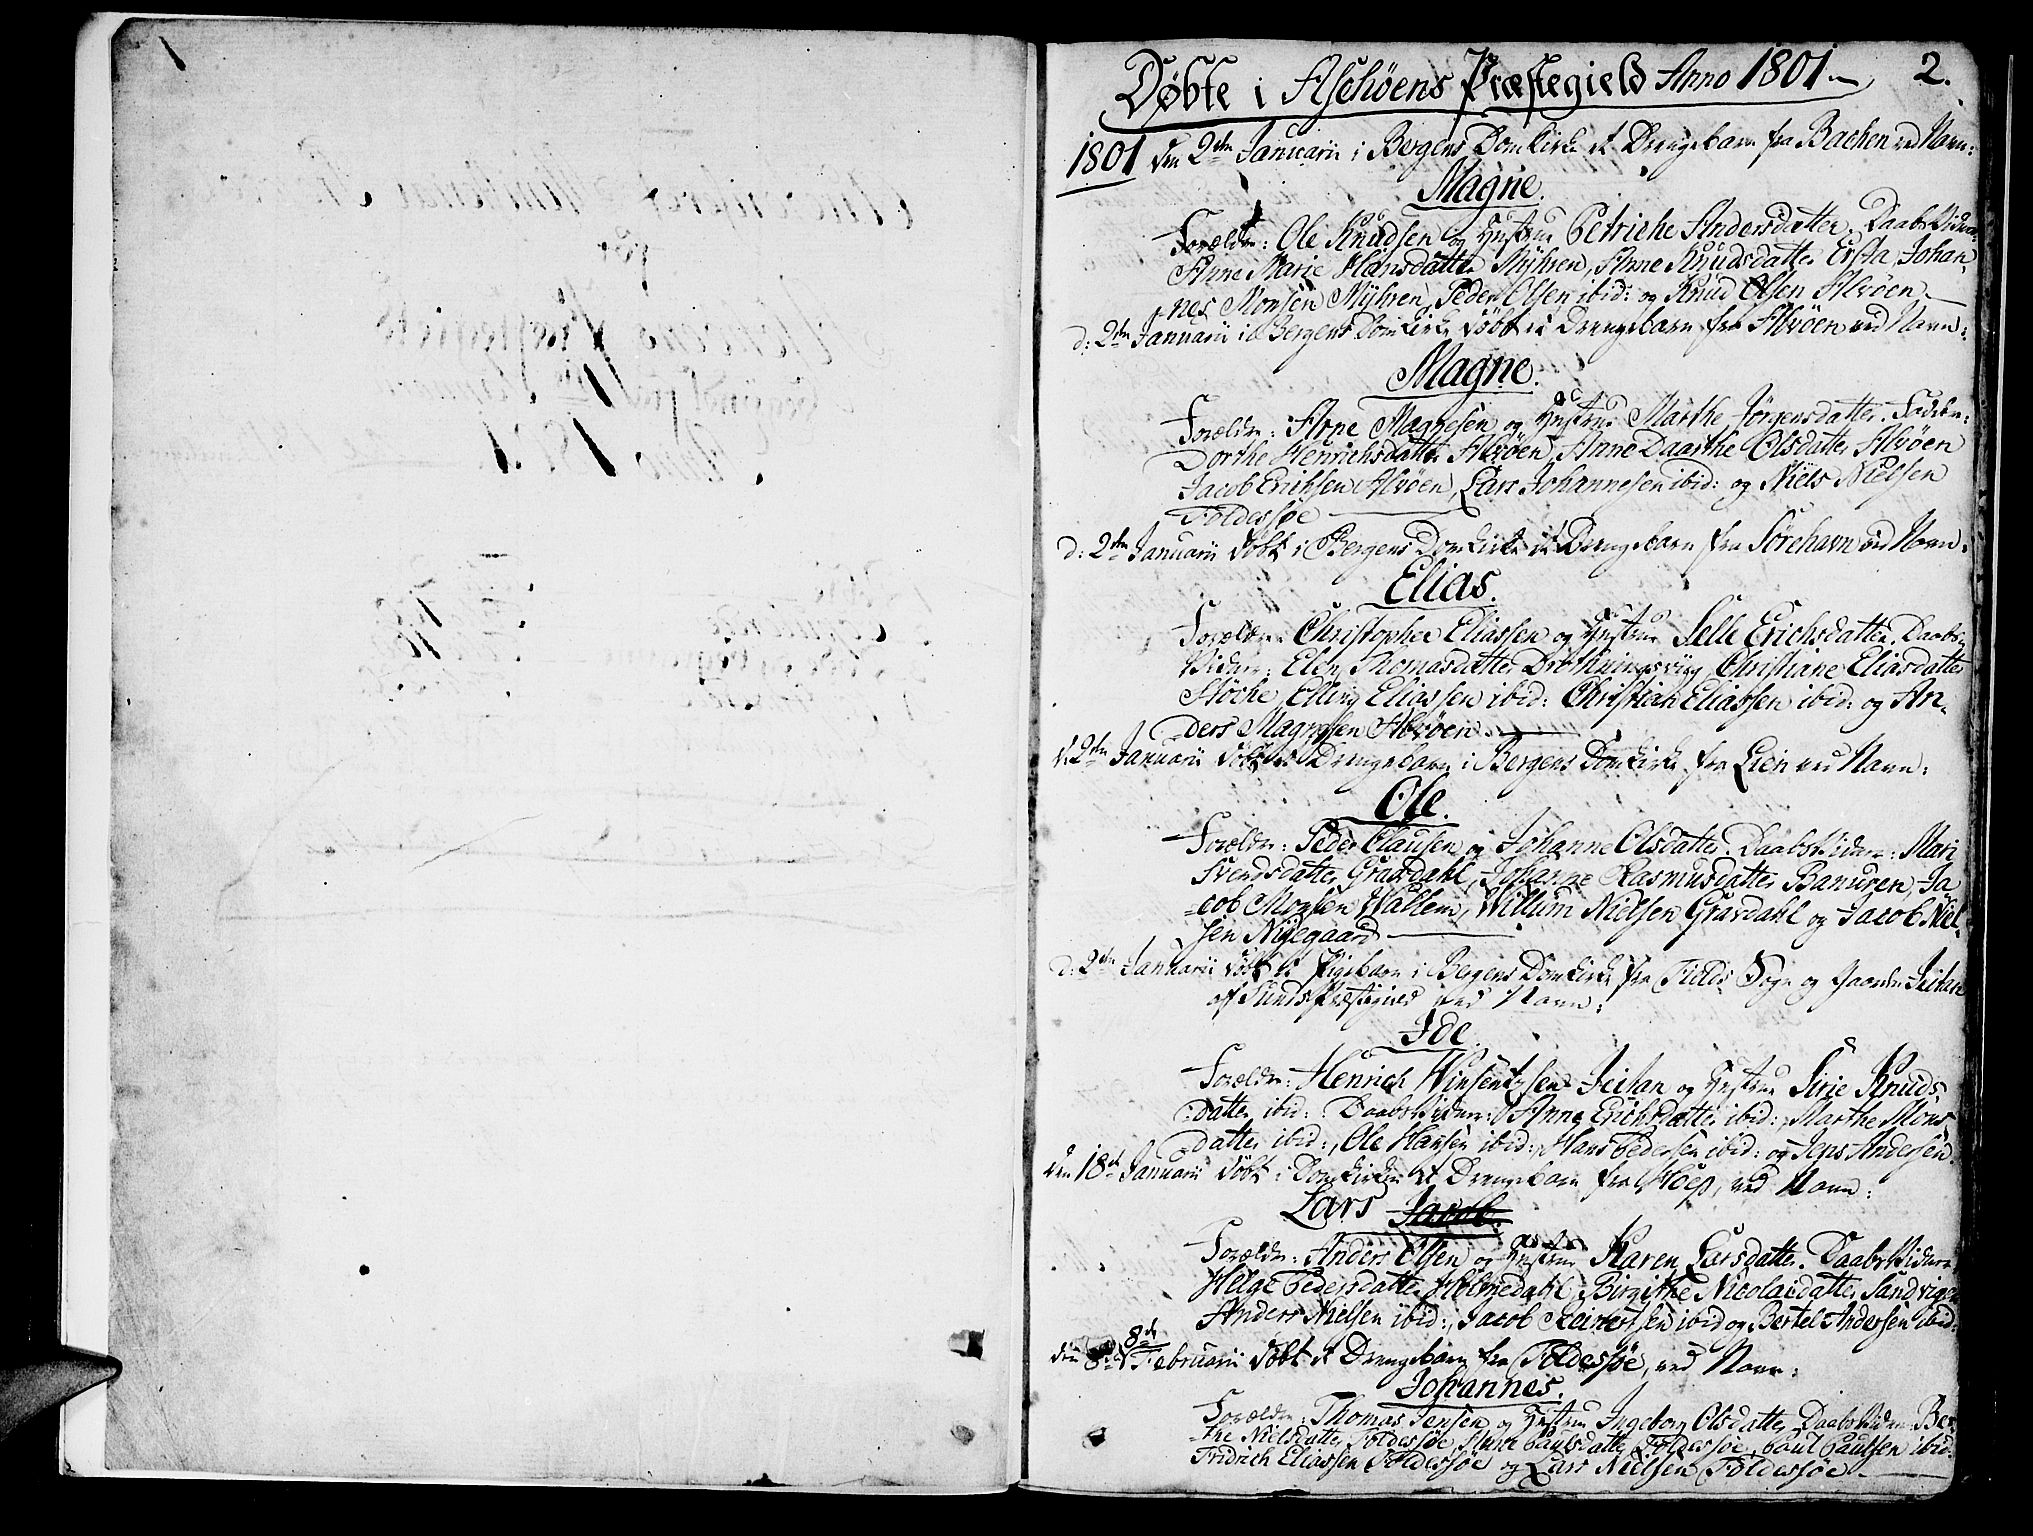 SAB, Askøy Sokneprestembete, H/Ha/Haa/Haaa/L0002: Parish register (official) no. A 2, 1801-1818, p. 2